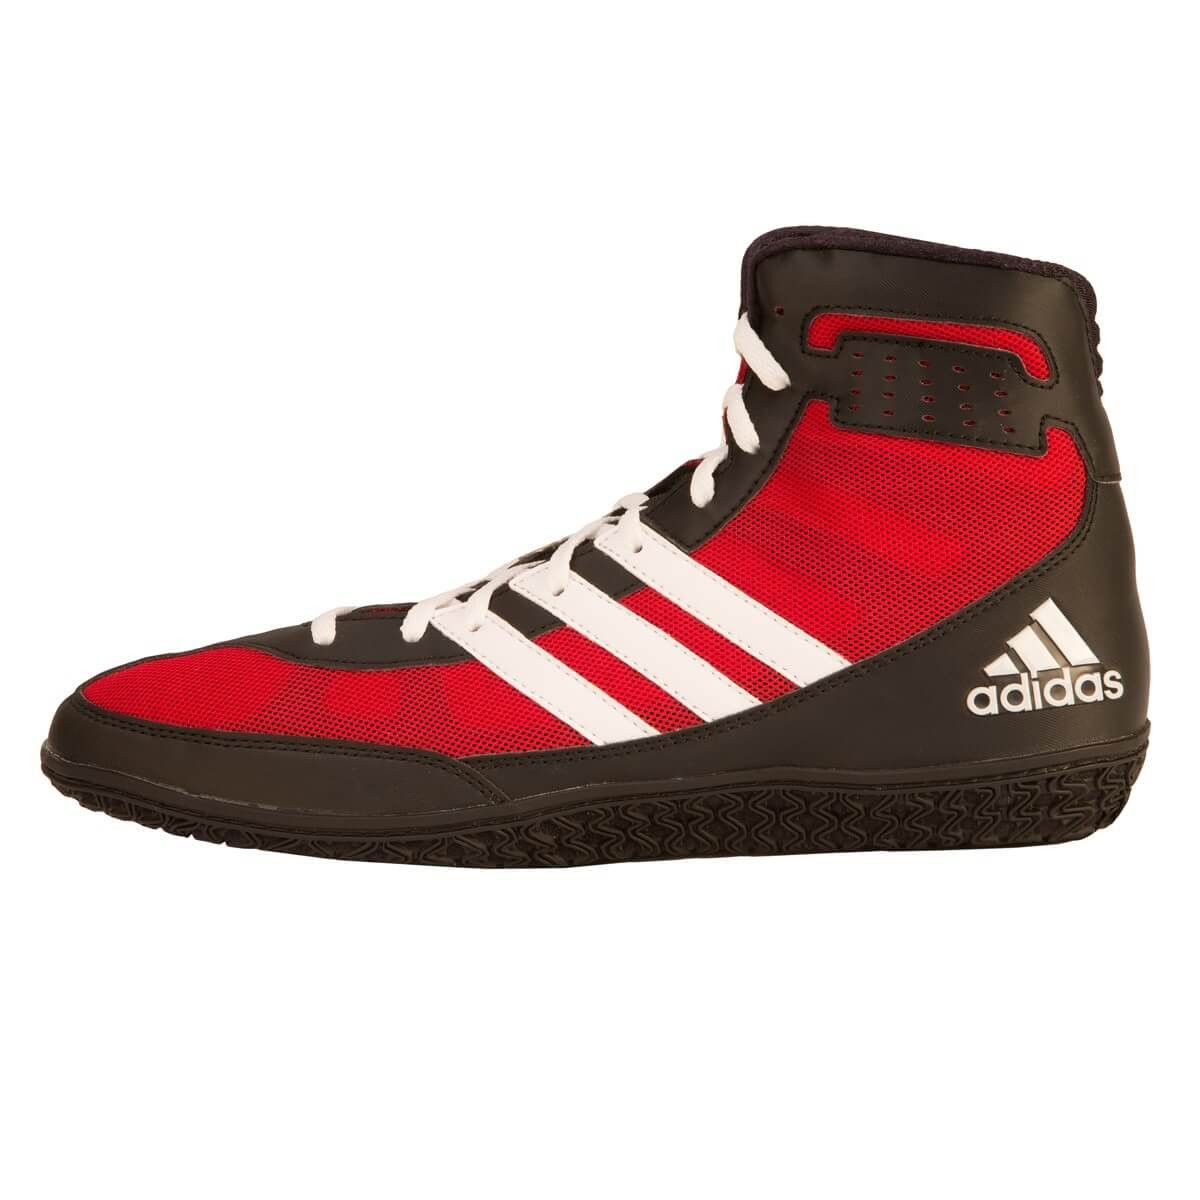 adidas low cut boxing shoes